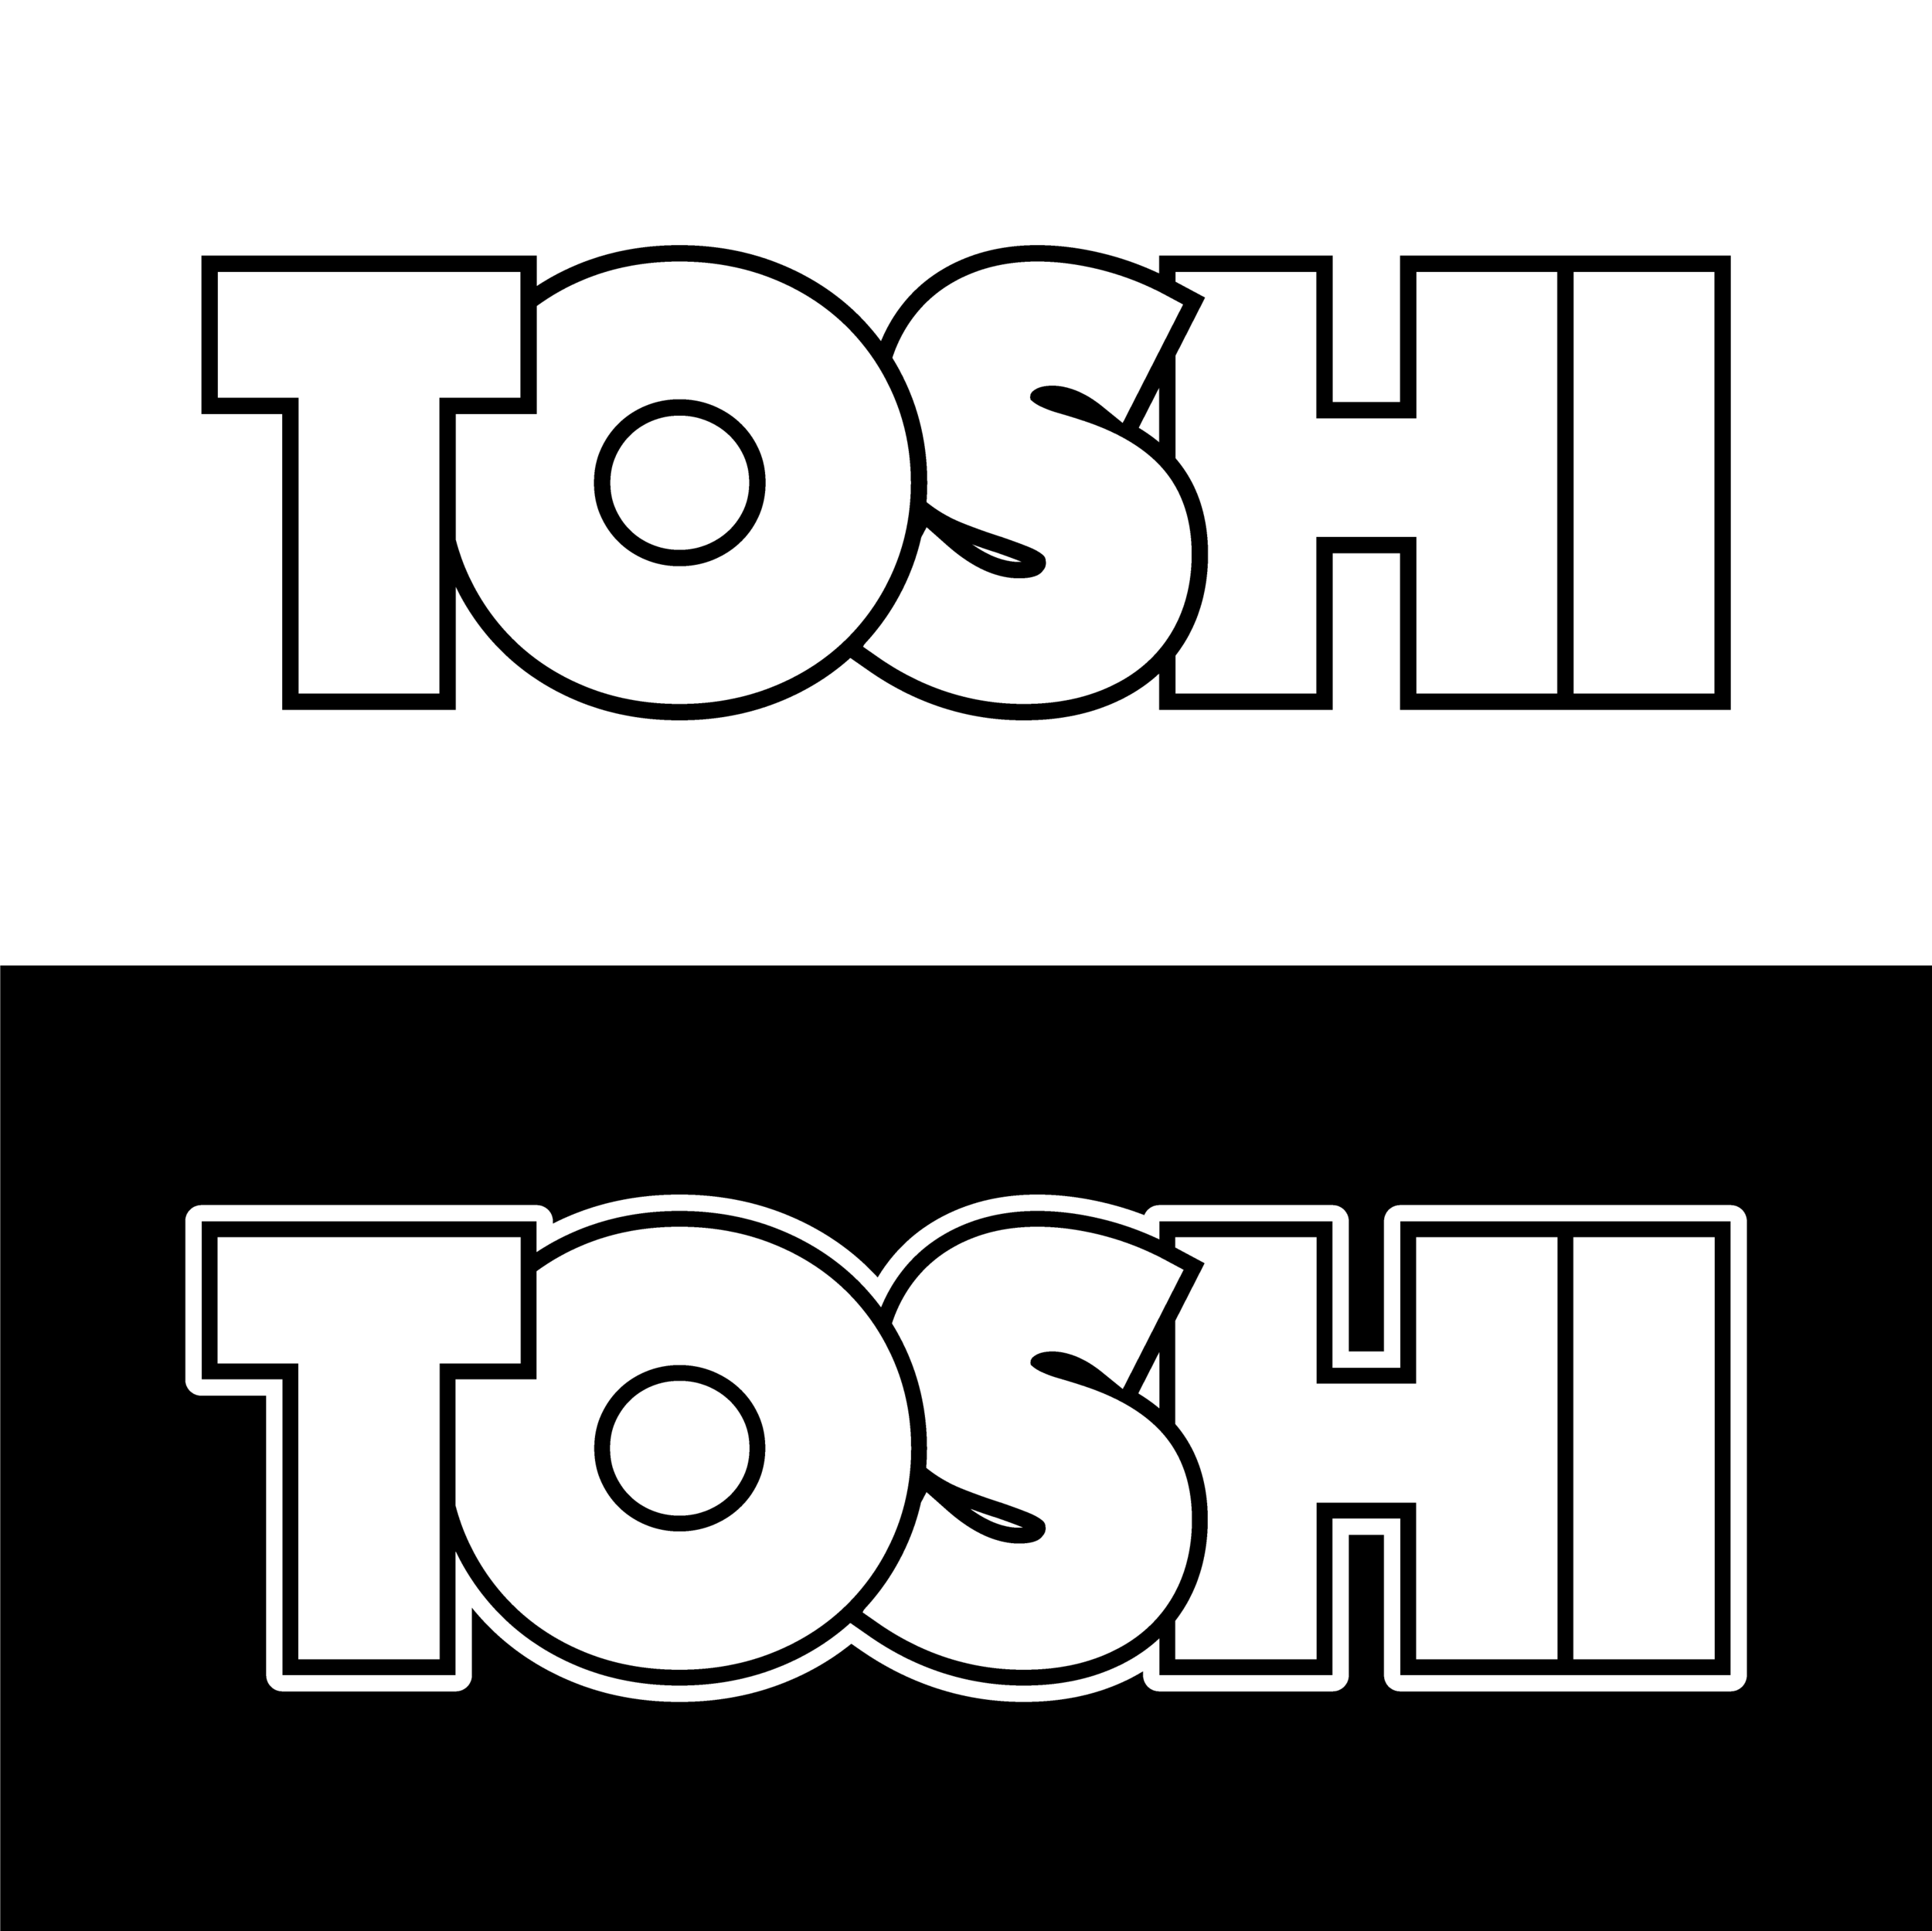 ODS-Fuji-Toshi-Apparel-Final_Toshi Type B&W.png